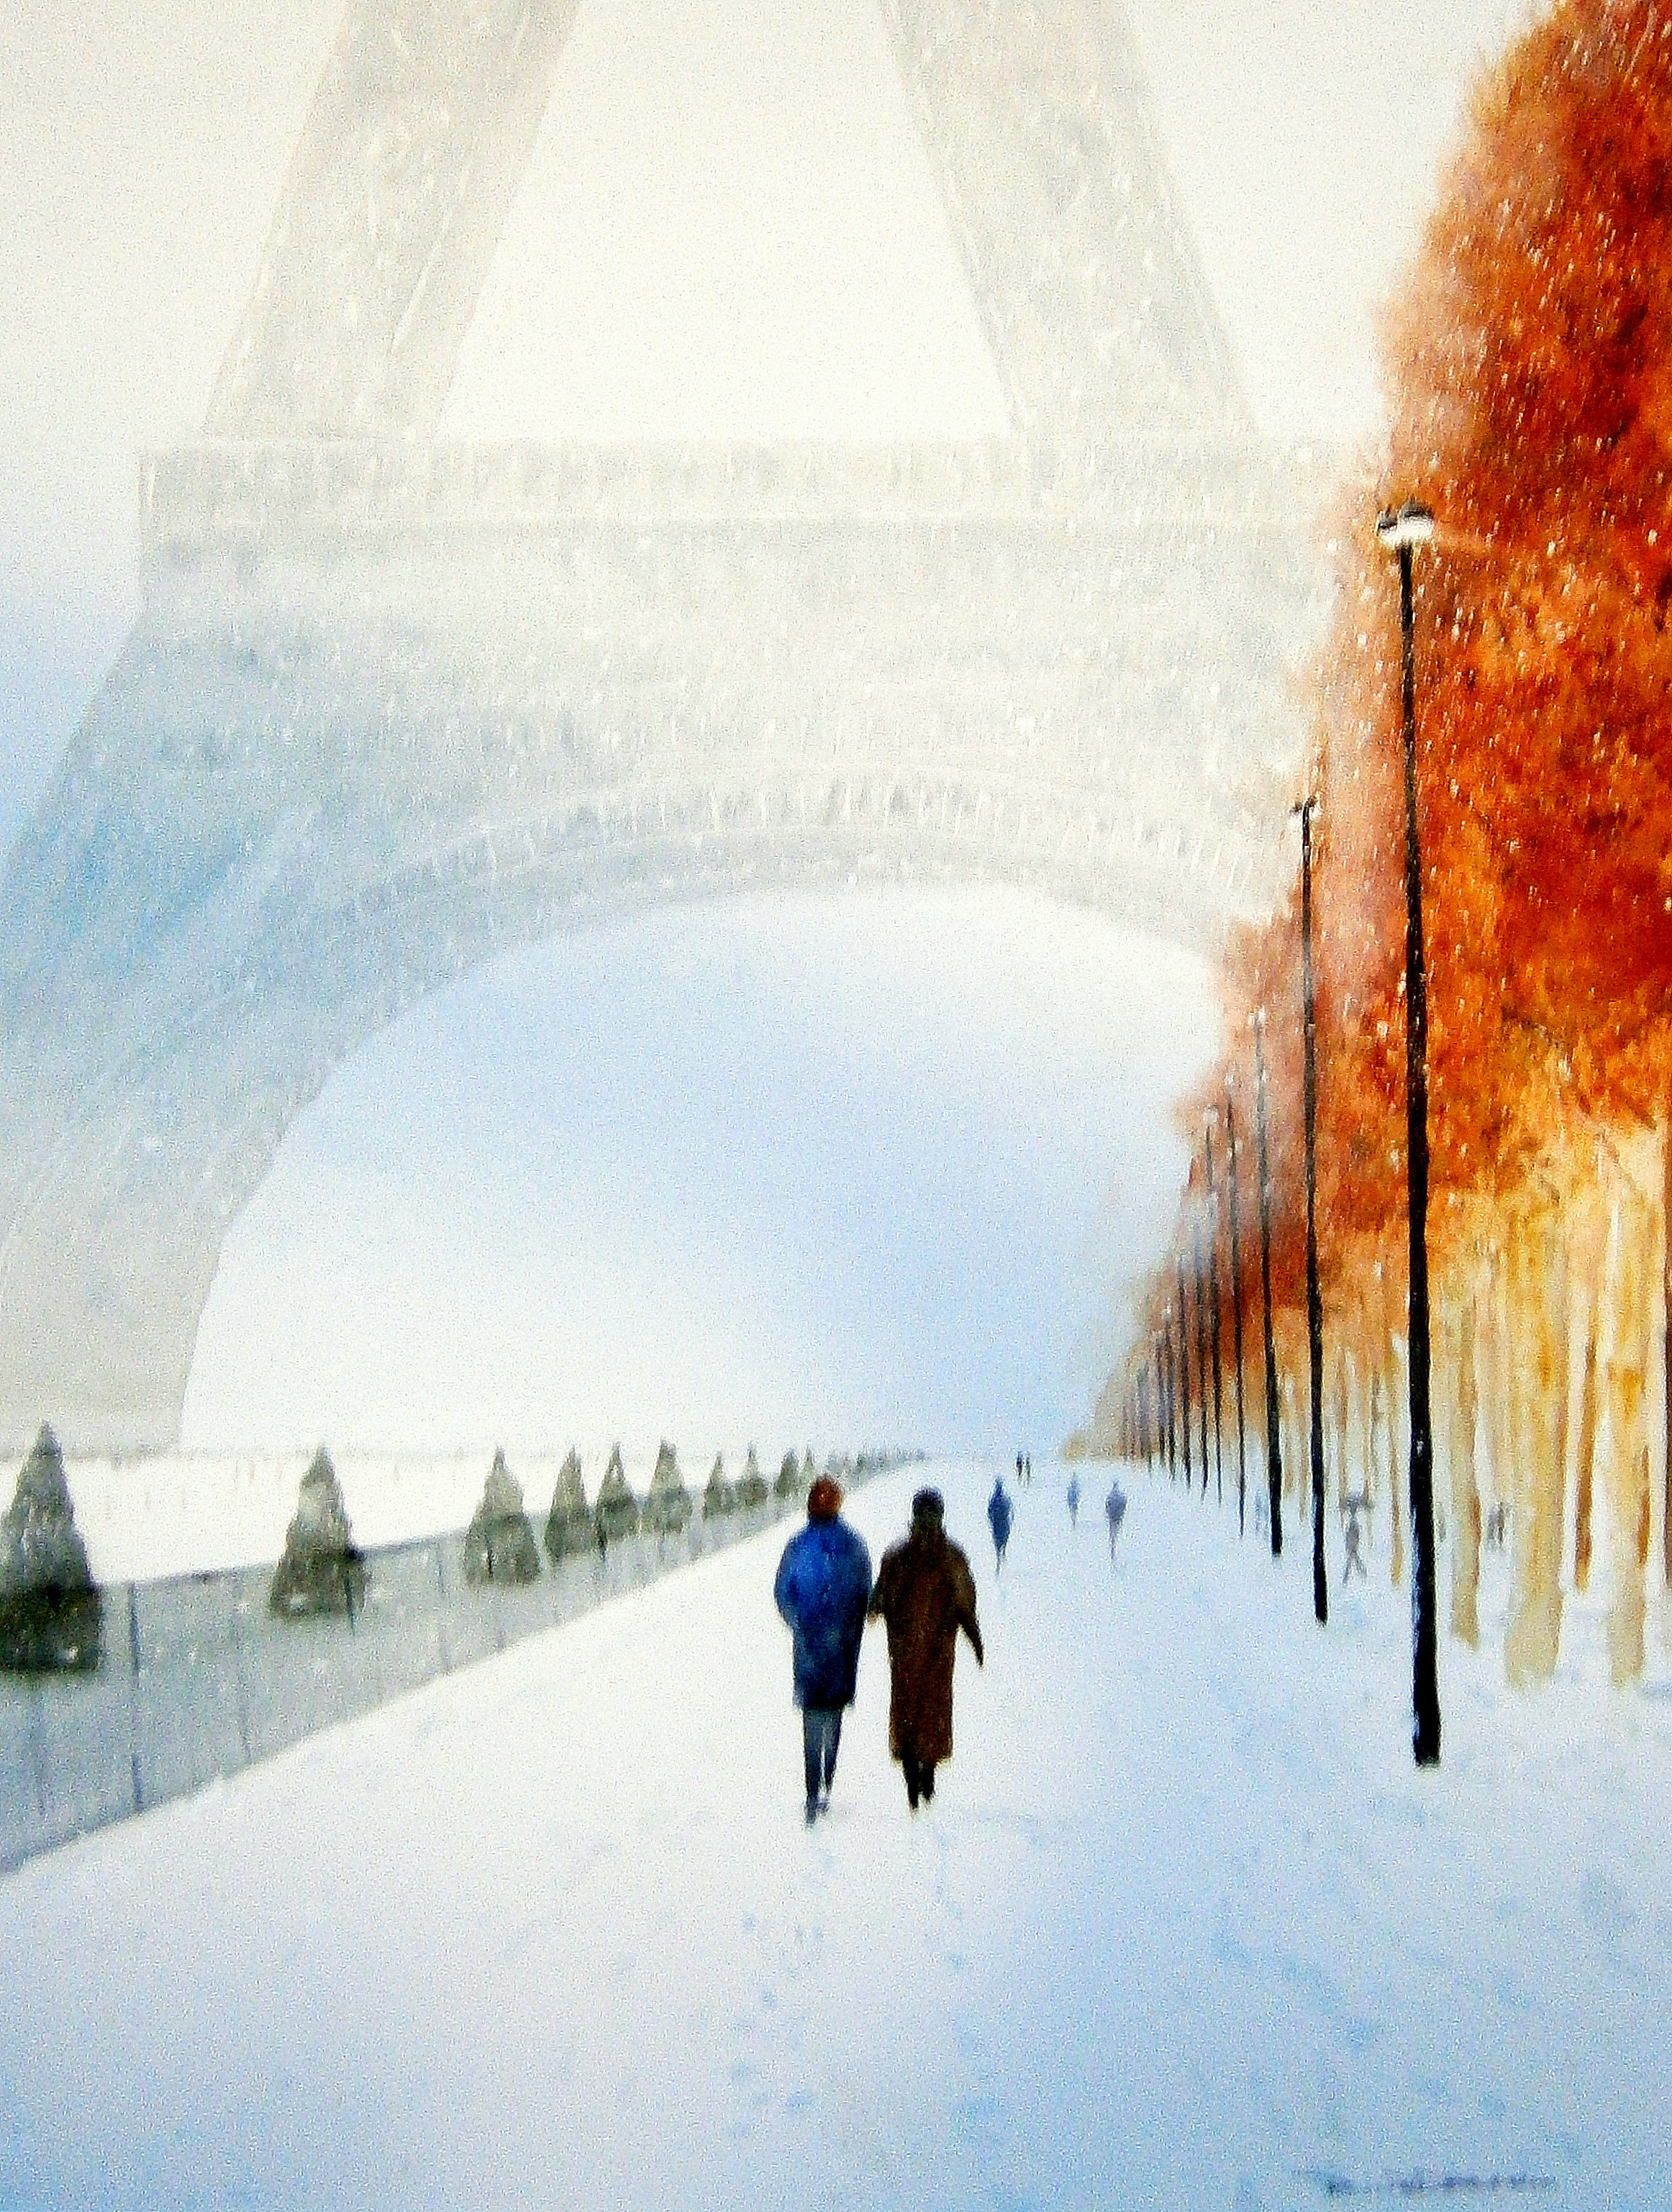 Winter in Paris #2